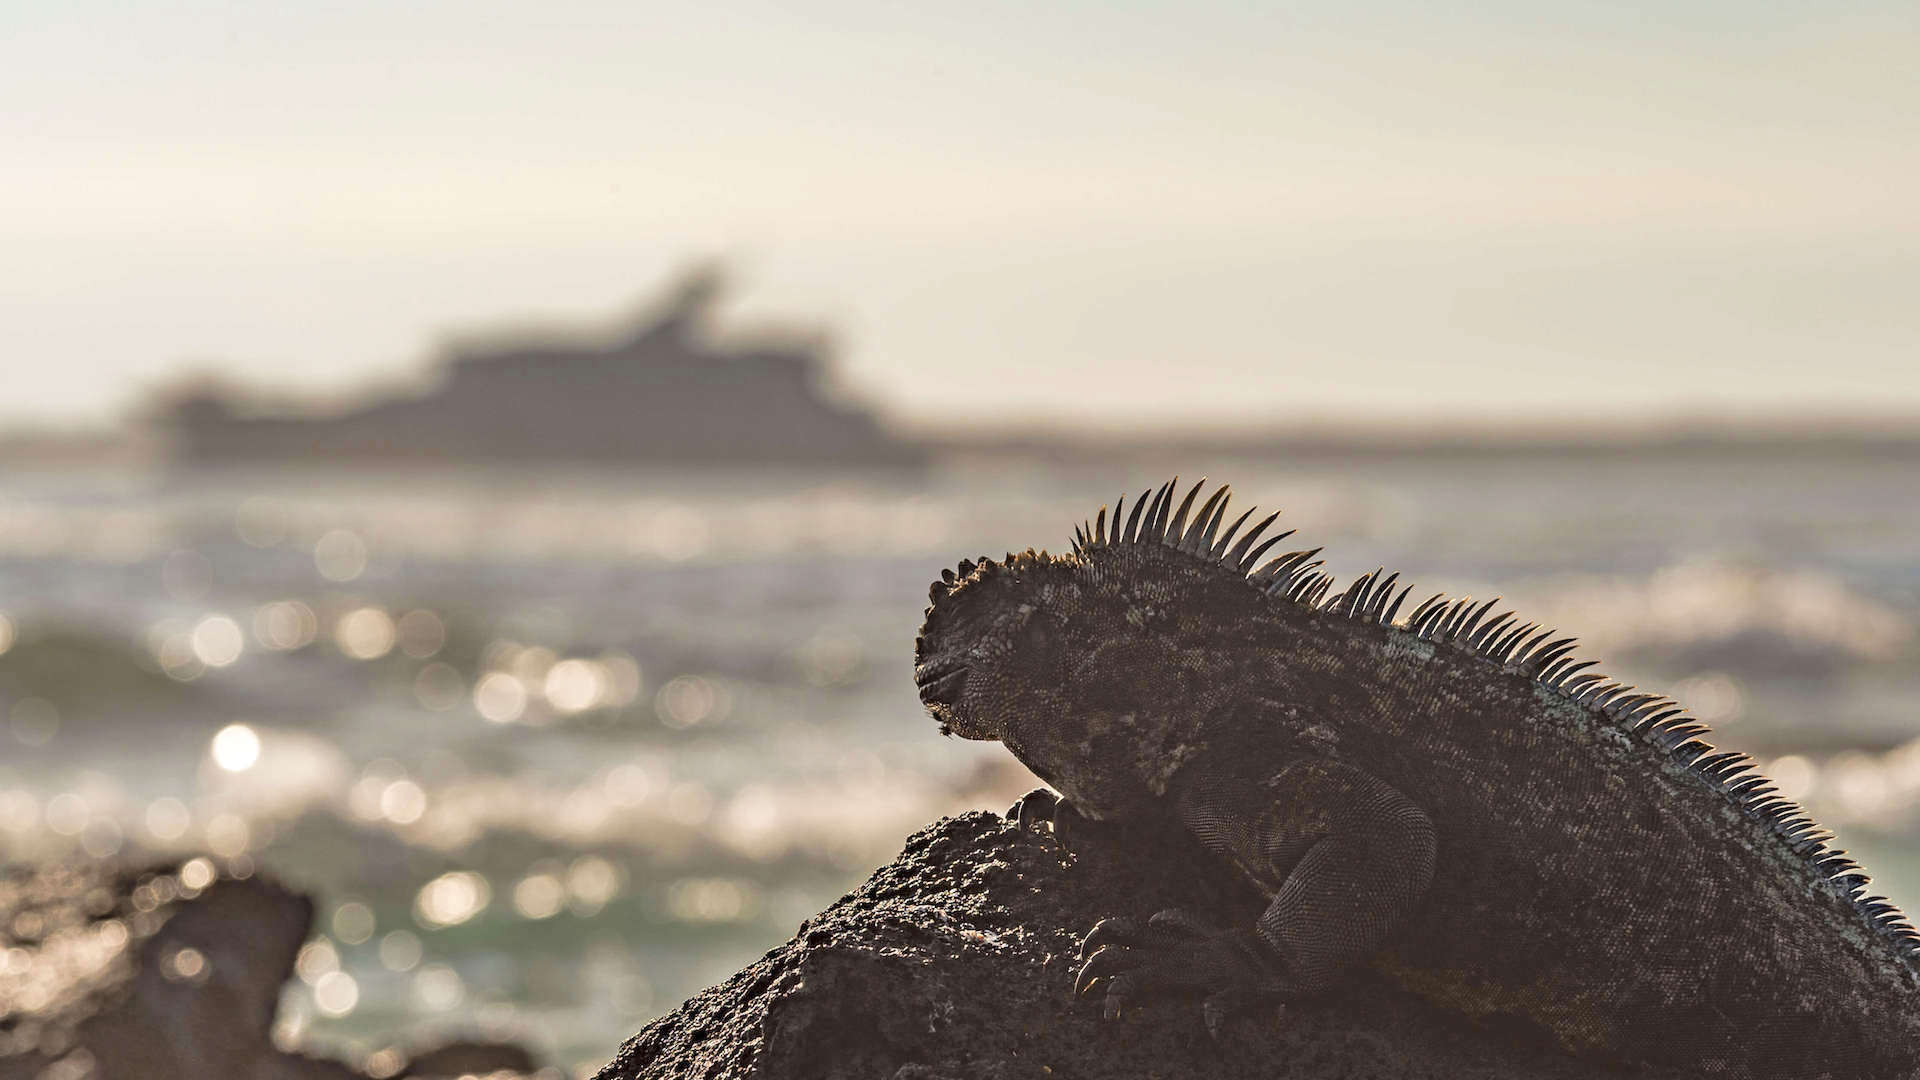 An Expedition Cruise To Galapagos